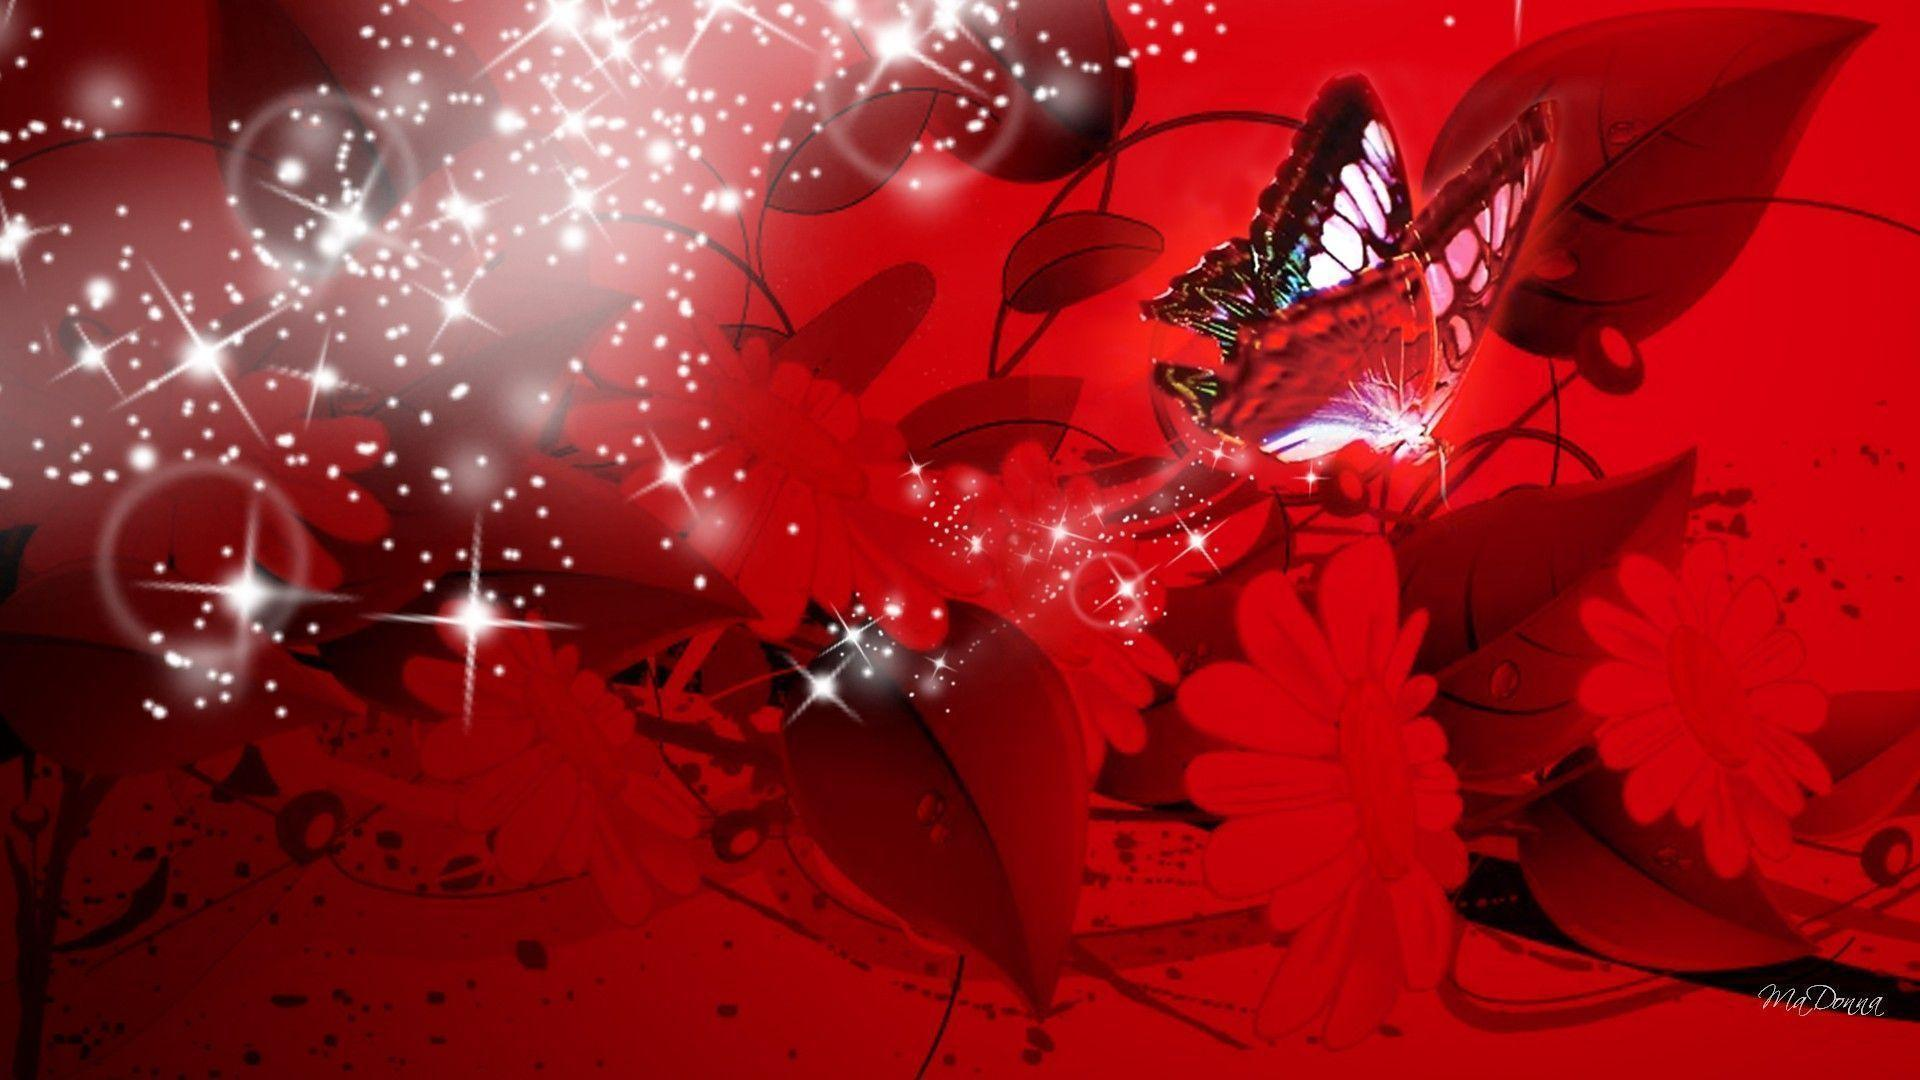 Happy Holidays Anime Girl Wallpaper 1920x1080 Red Butterfly Wallpapers Wallpaper Cave